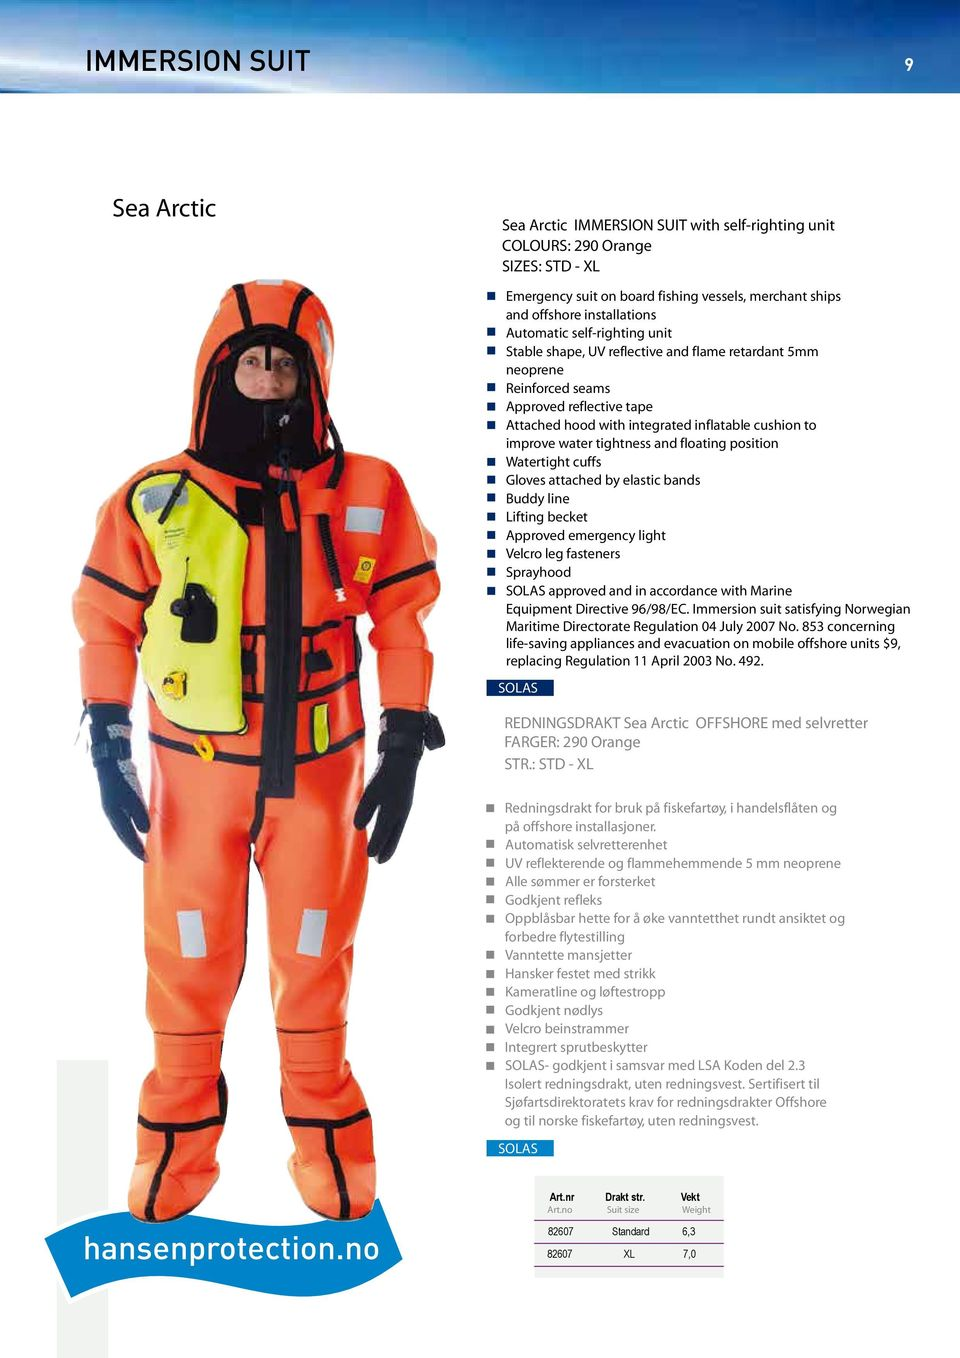 tightness and floating position Watertight cuffs Gloves attached by elastic bands Buddy line Lifting becket Approved emergency light Velcro leg fasteners Sprayhood approved and in accordance with